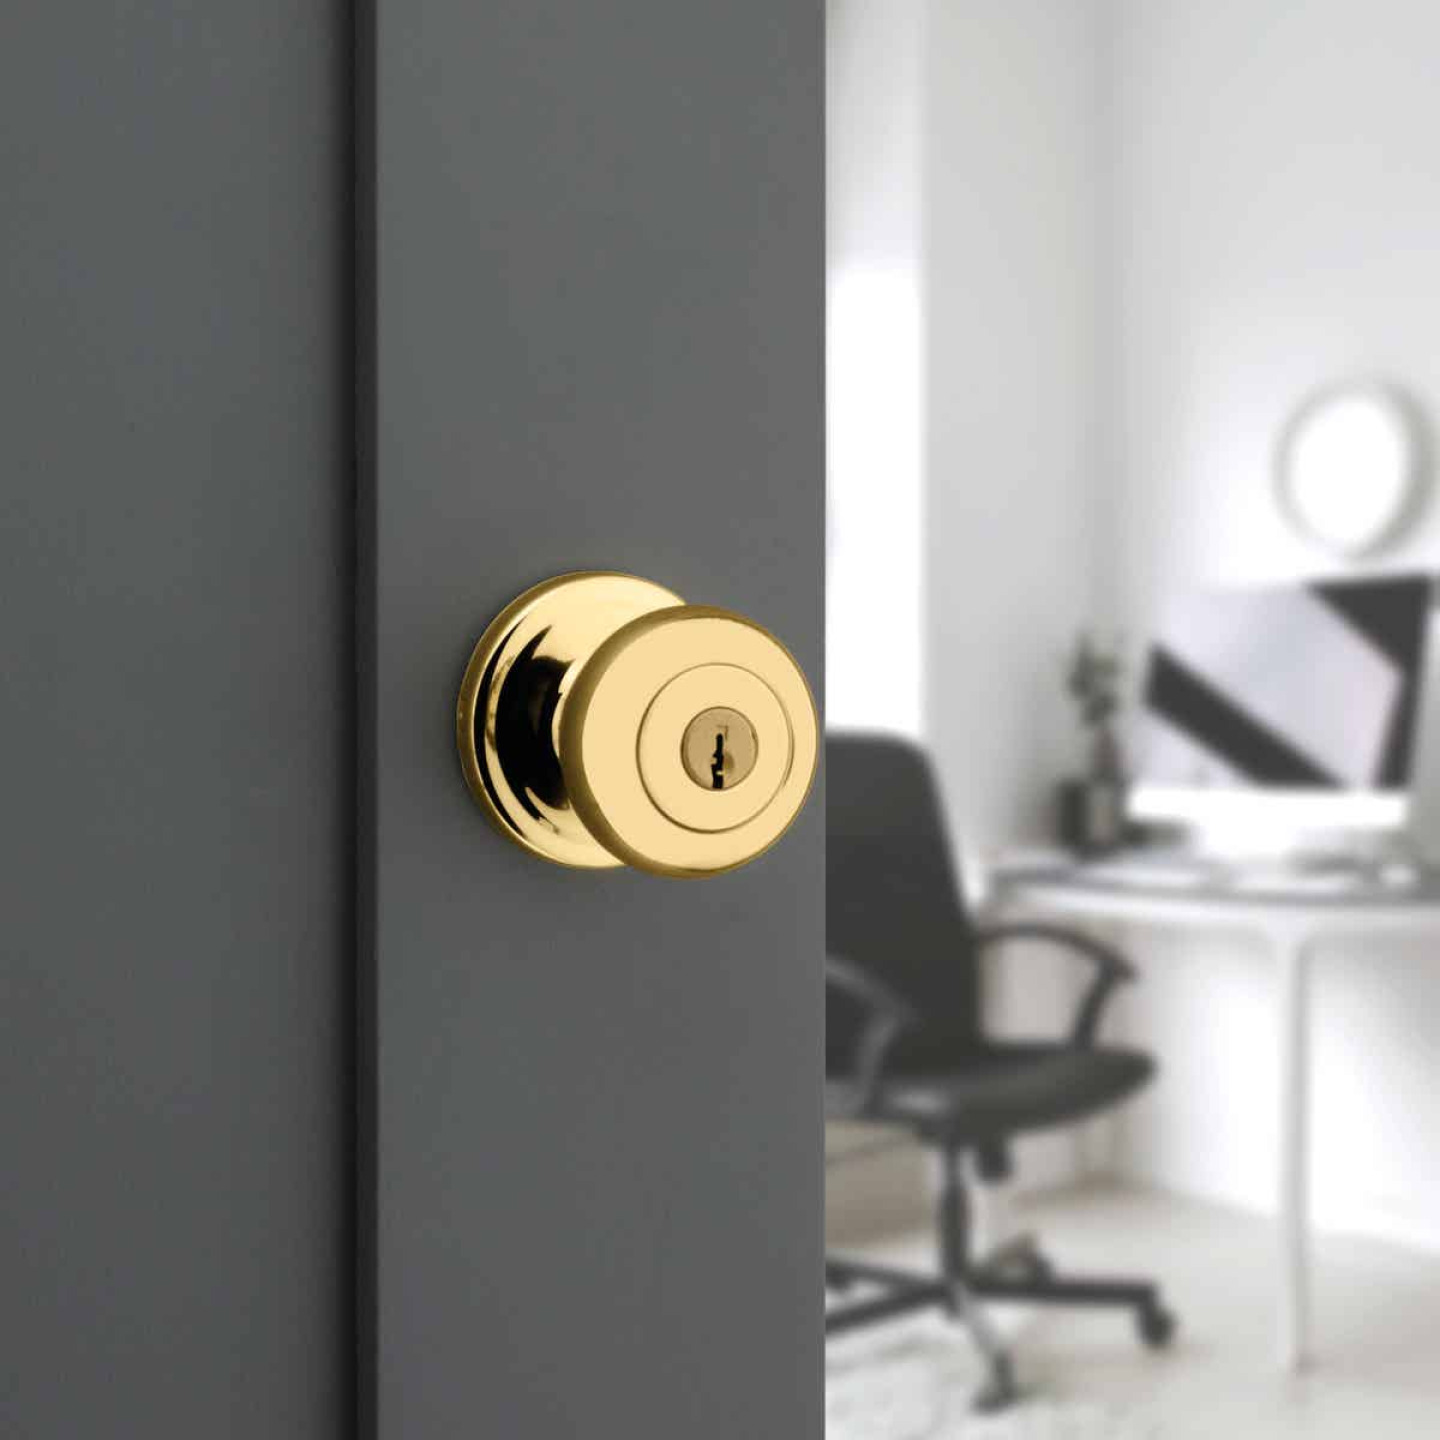 Kwikset Signature Series Polished Brass Juno Entry Door Knob with SmartKey Image 2